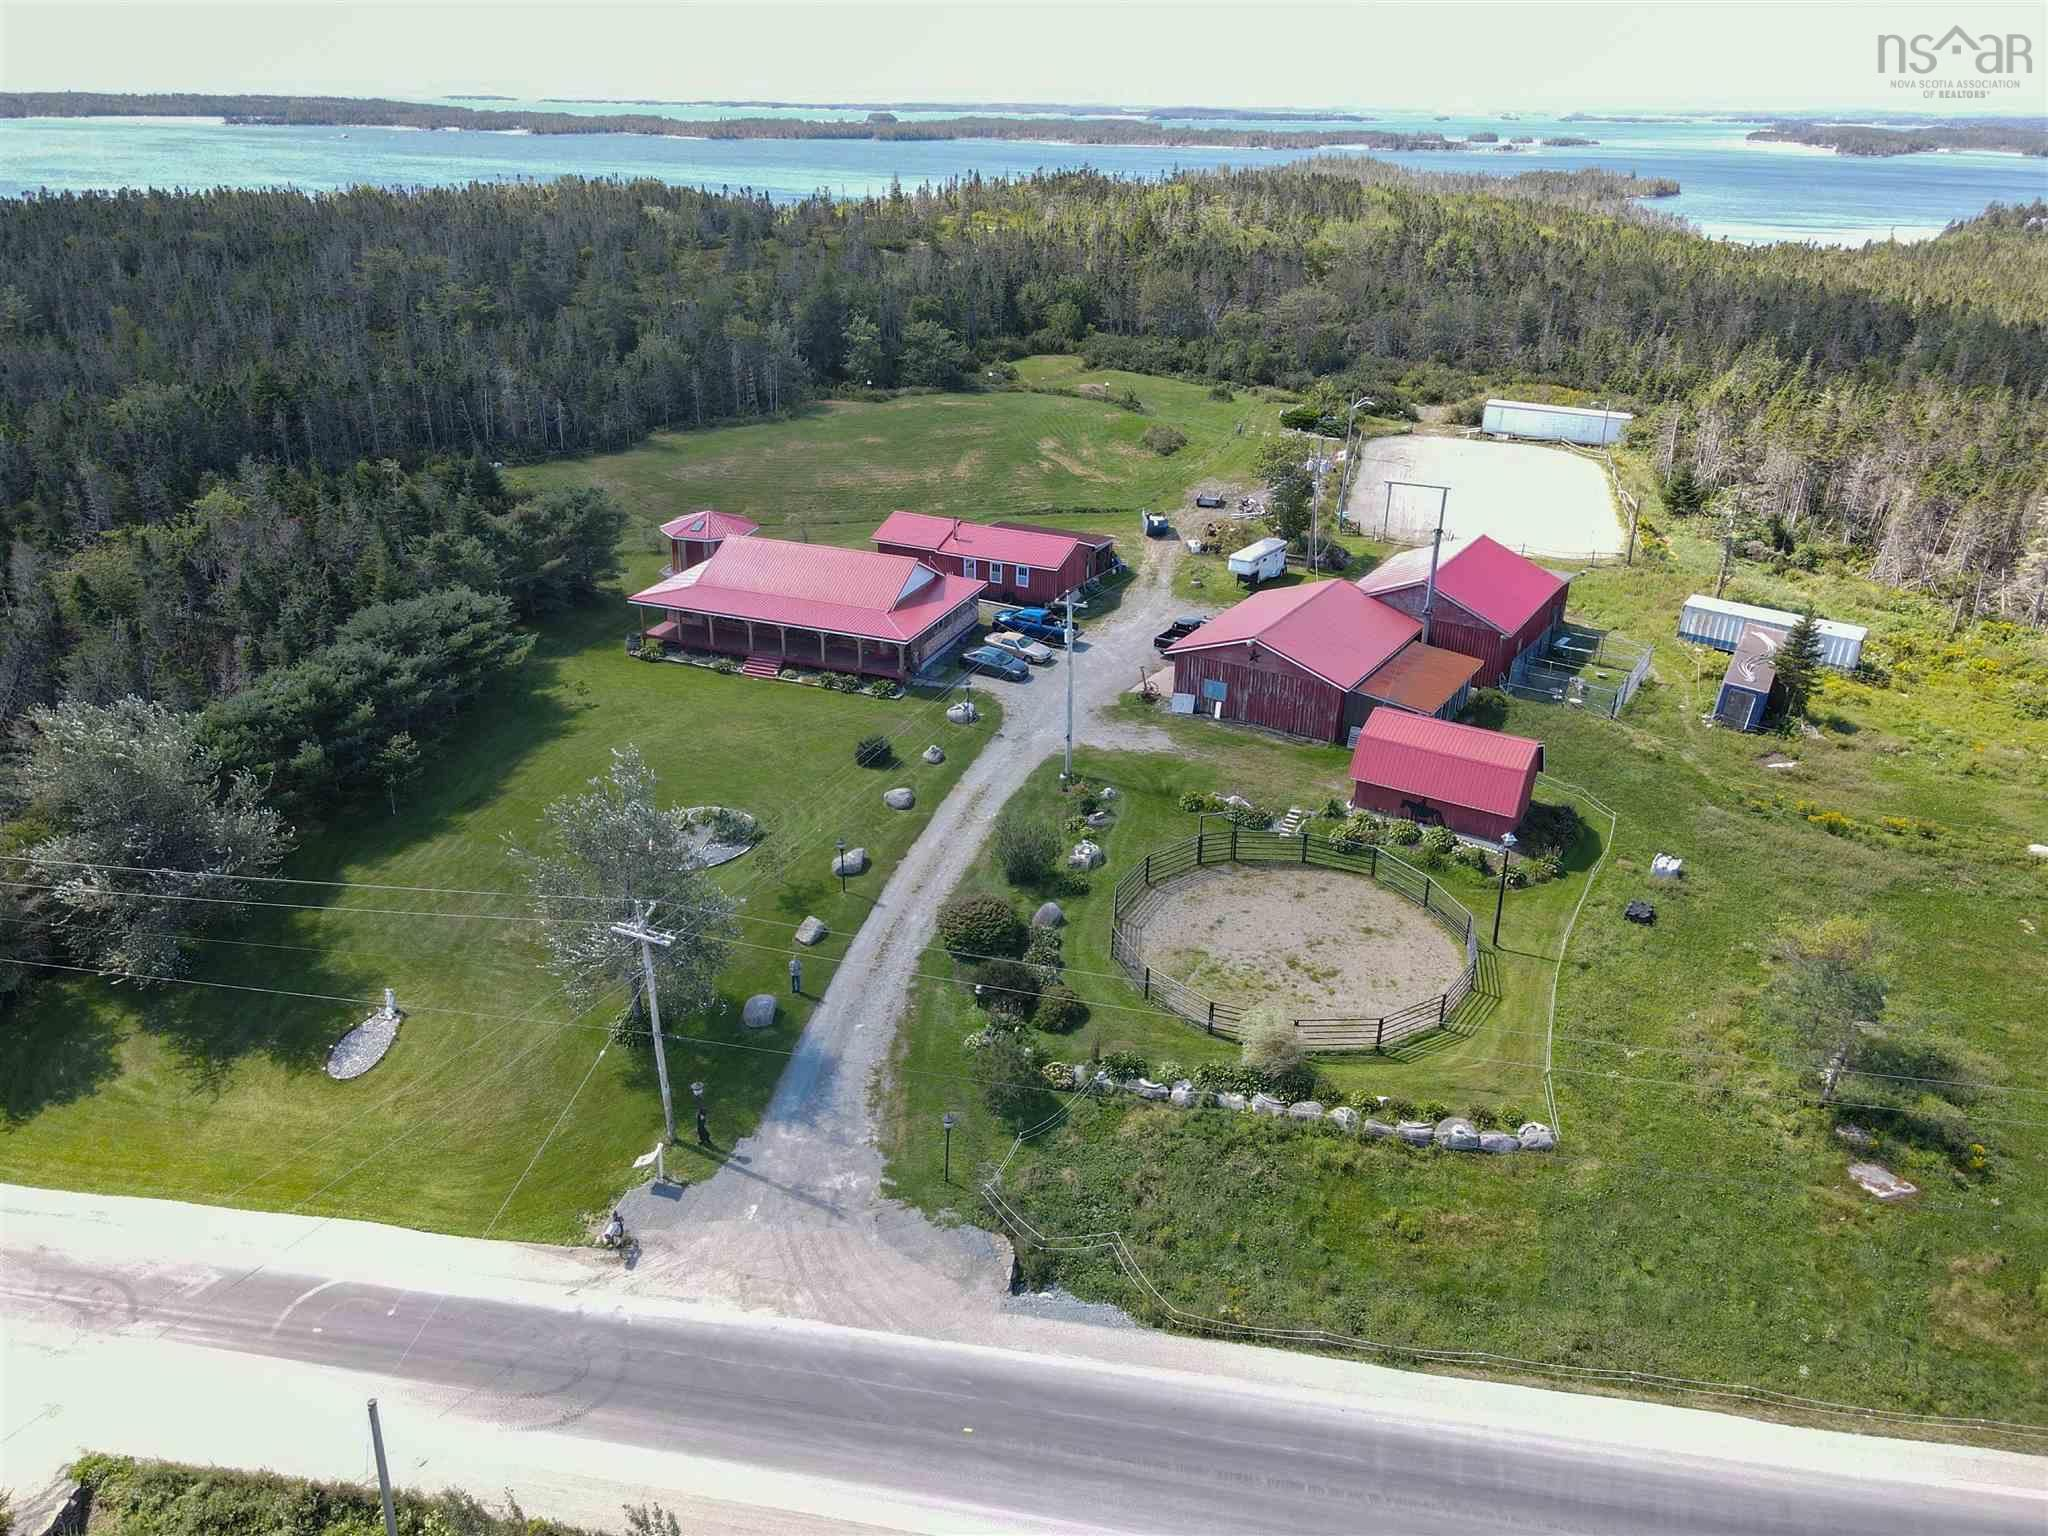 Main Photo: 246 Coopers Road in Tangier: 35-Halifax County East Farm for sale (Halifax-Dartmouth)  : MLS®# 202122270